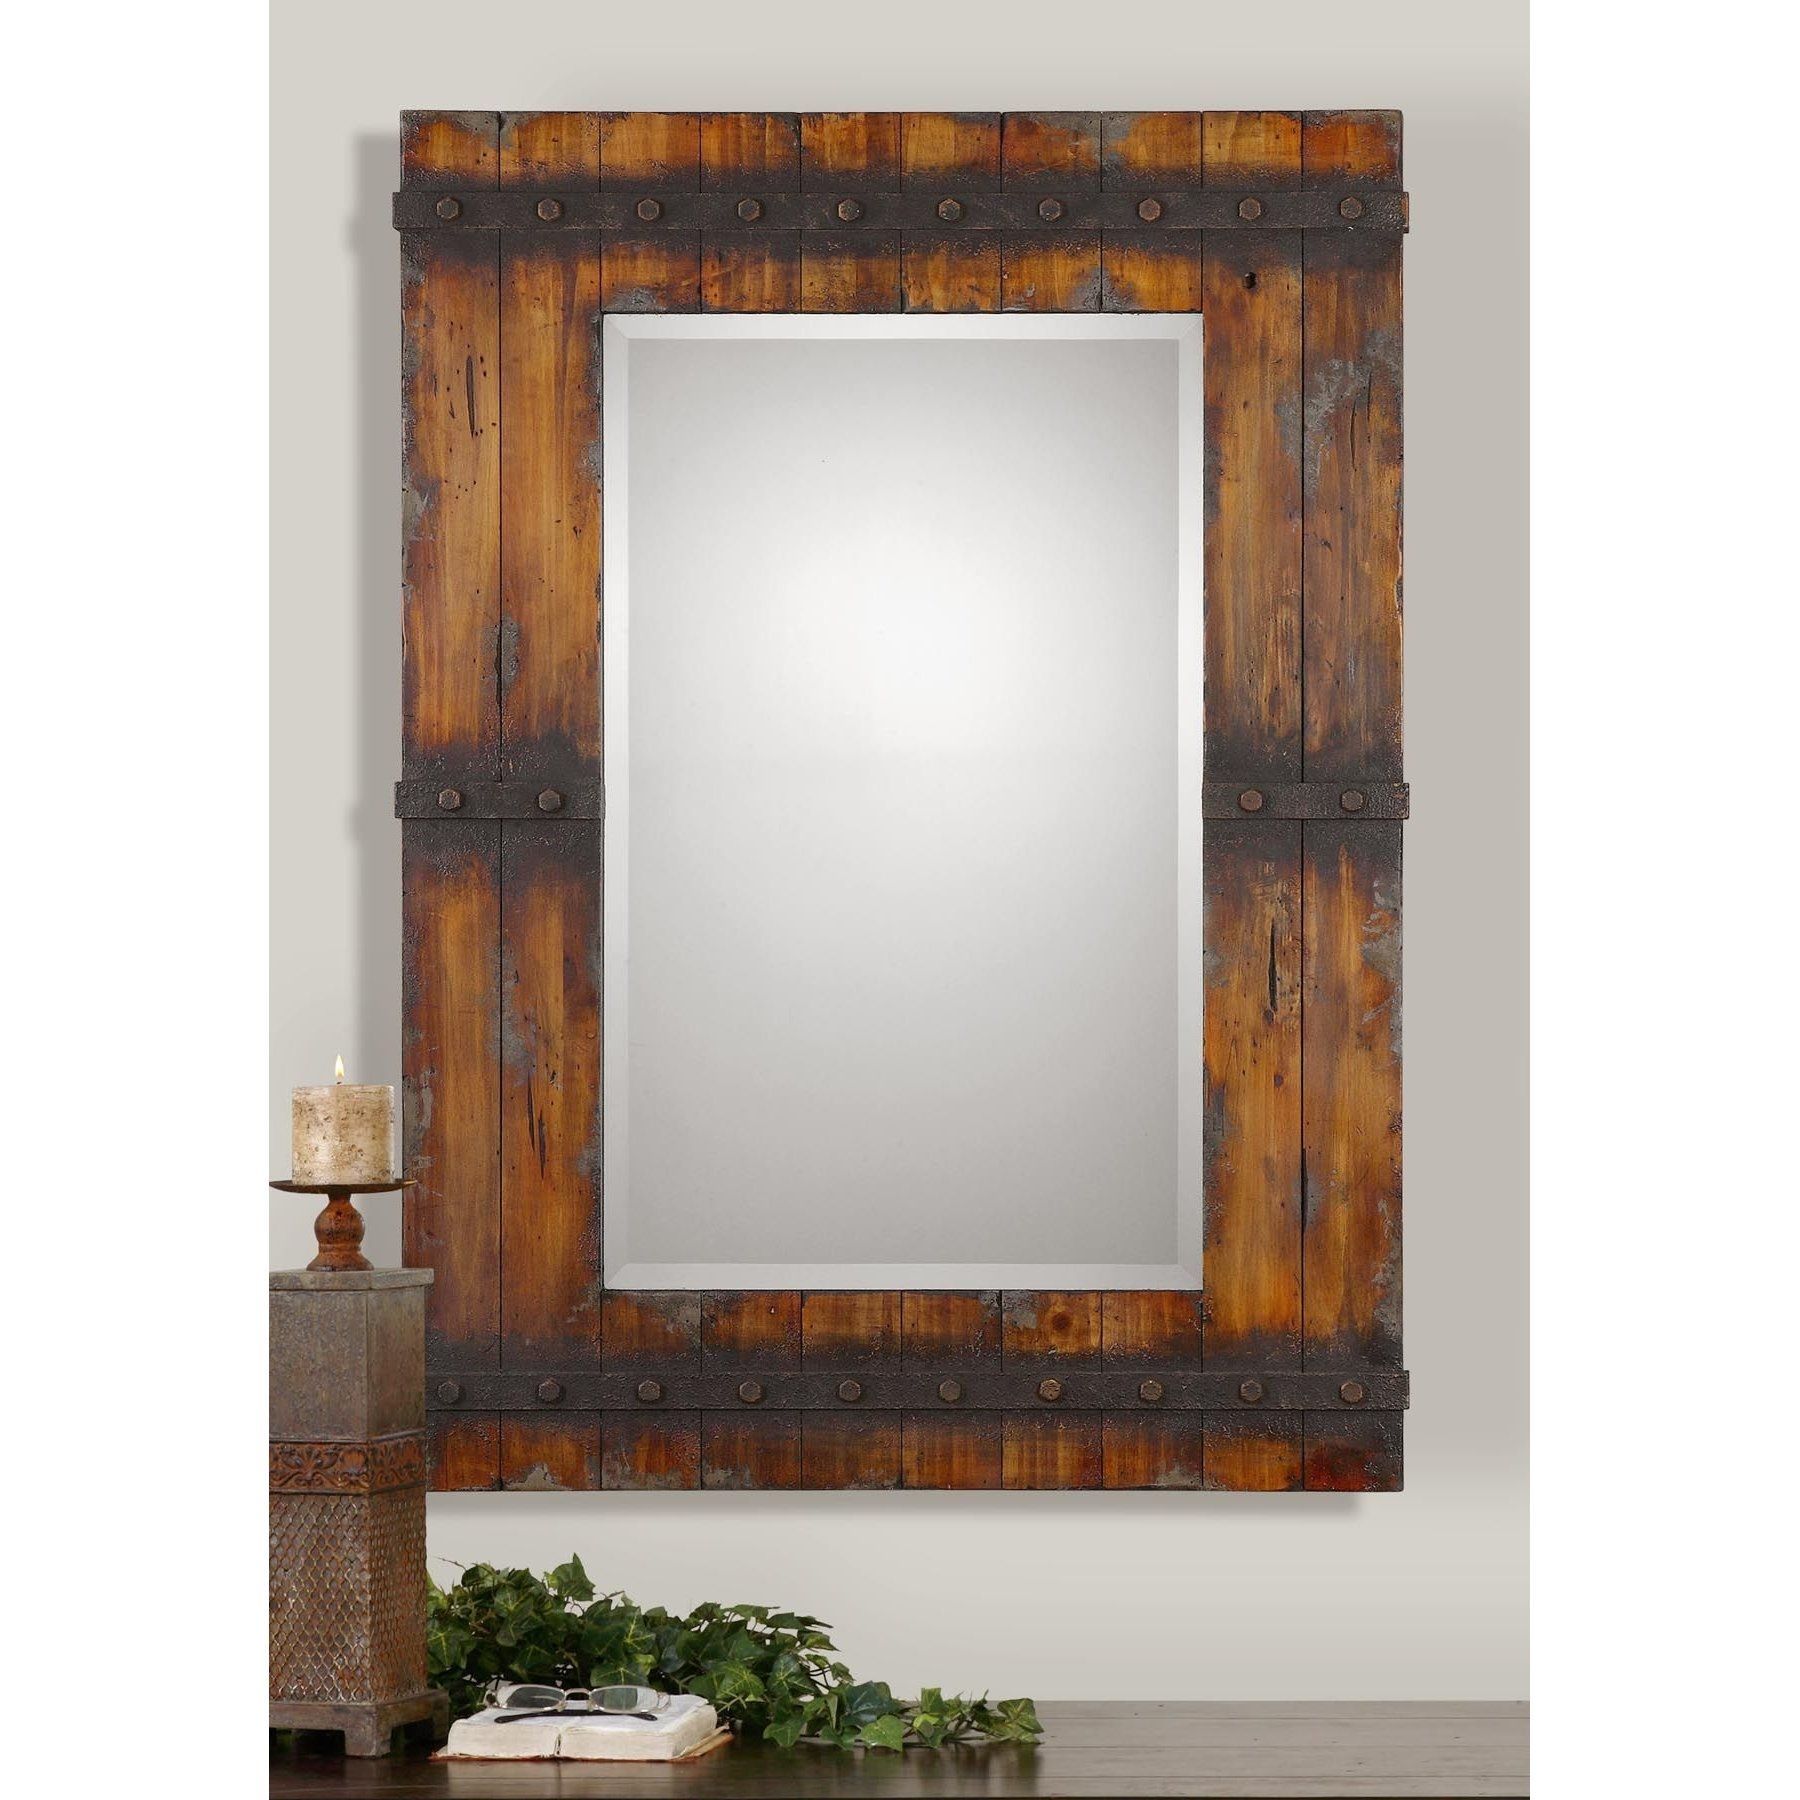 15 best collection of landscape wall mirror mirror ideas uttermost stockley wall mirror reviews wayfair pertaining to landscape wall mirror image 15 of 15 amipublicfo Gallery